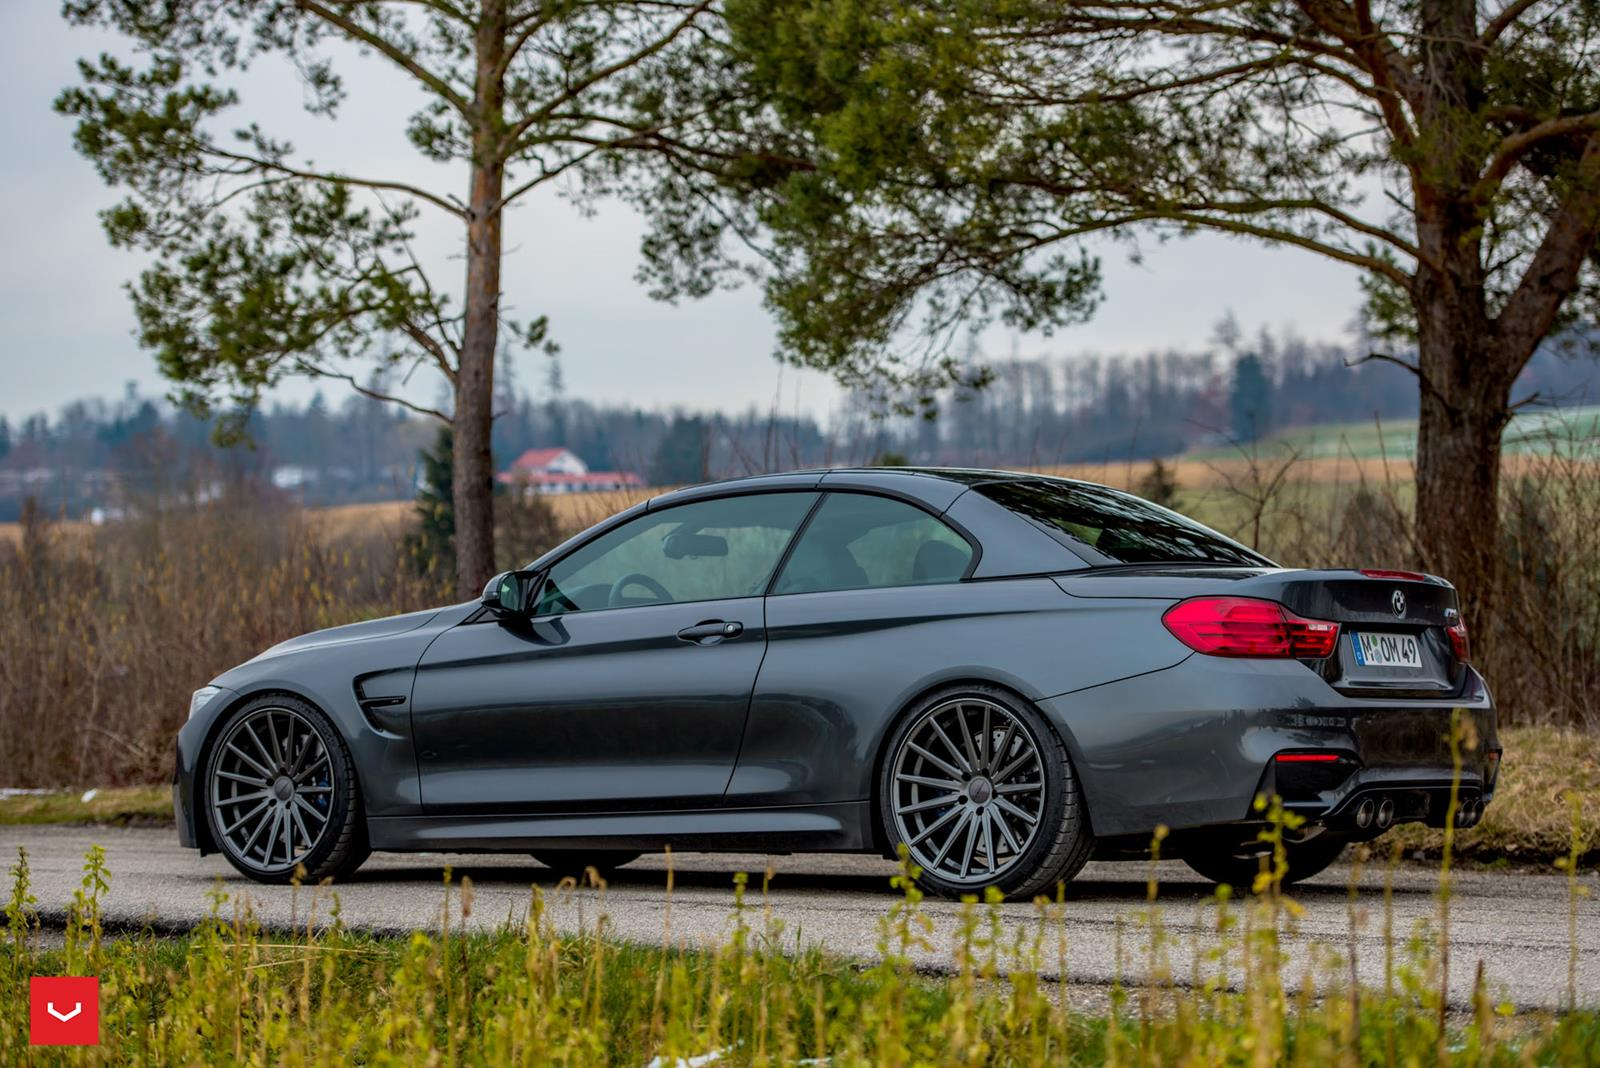 bmw m4 m3 f8x felgen 20 zoll vossen vfs 2 lifeonwheels. Black Bedroom Furniture Sets. Home Design Ideas